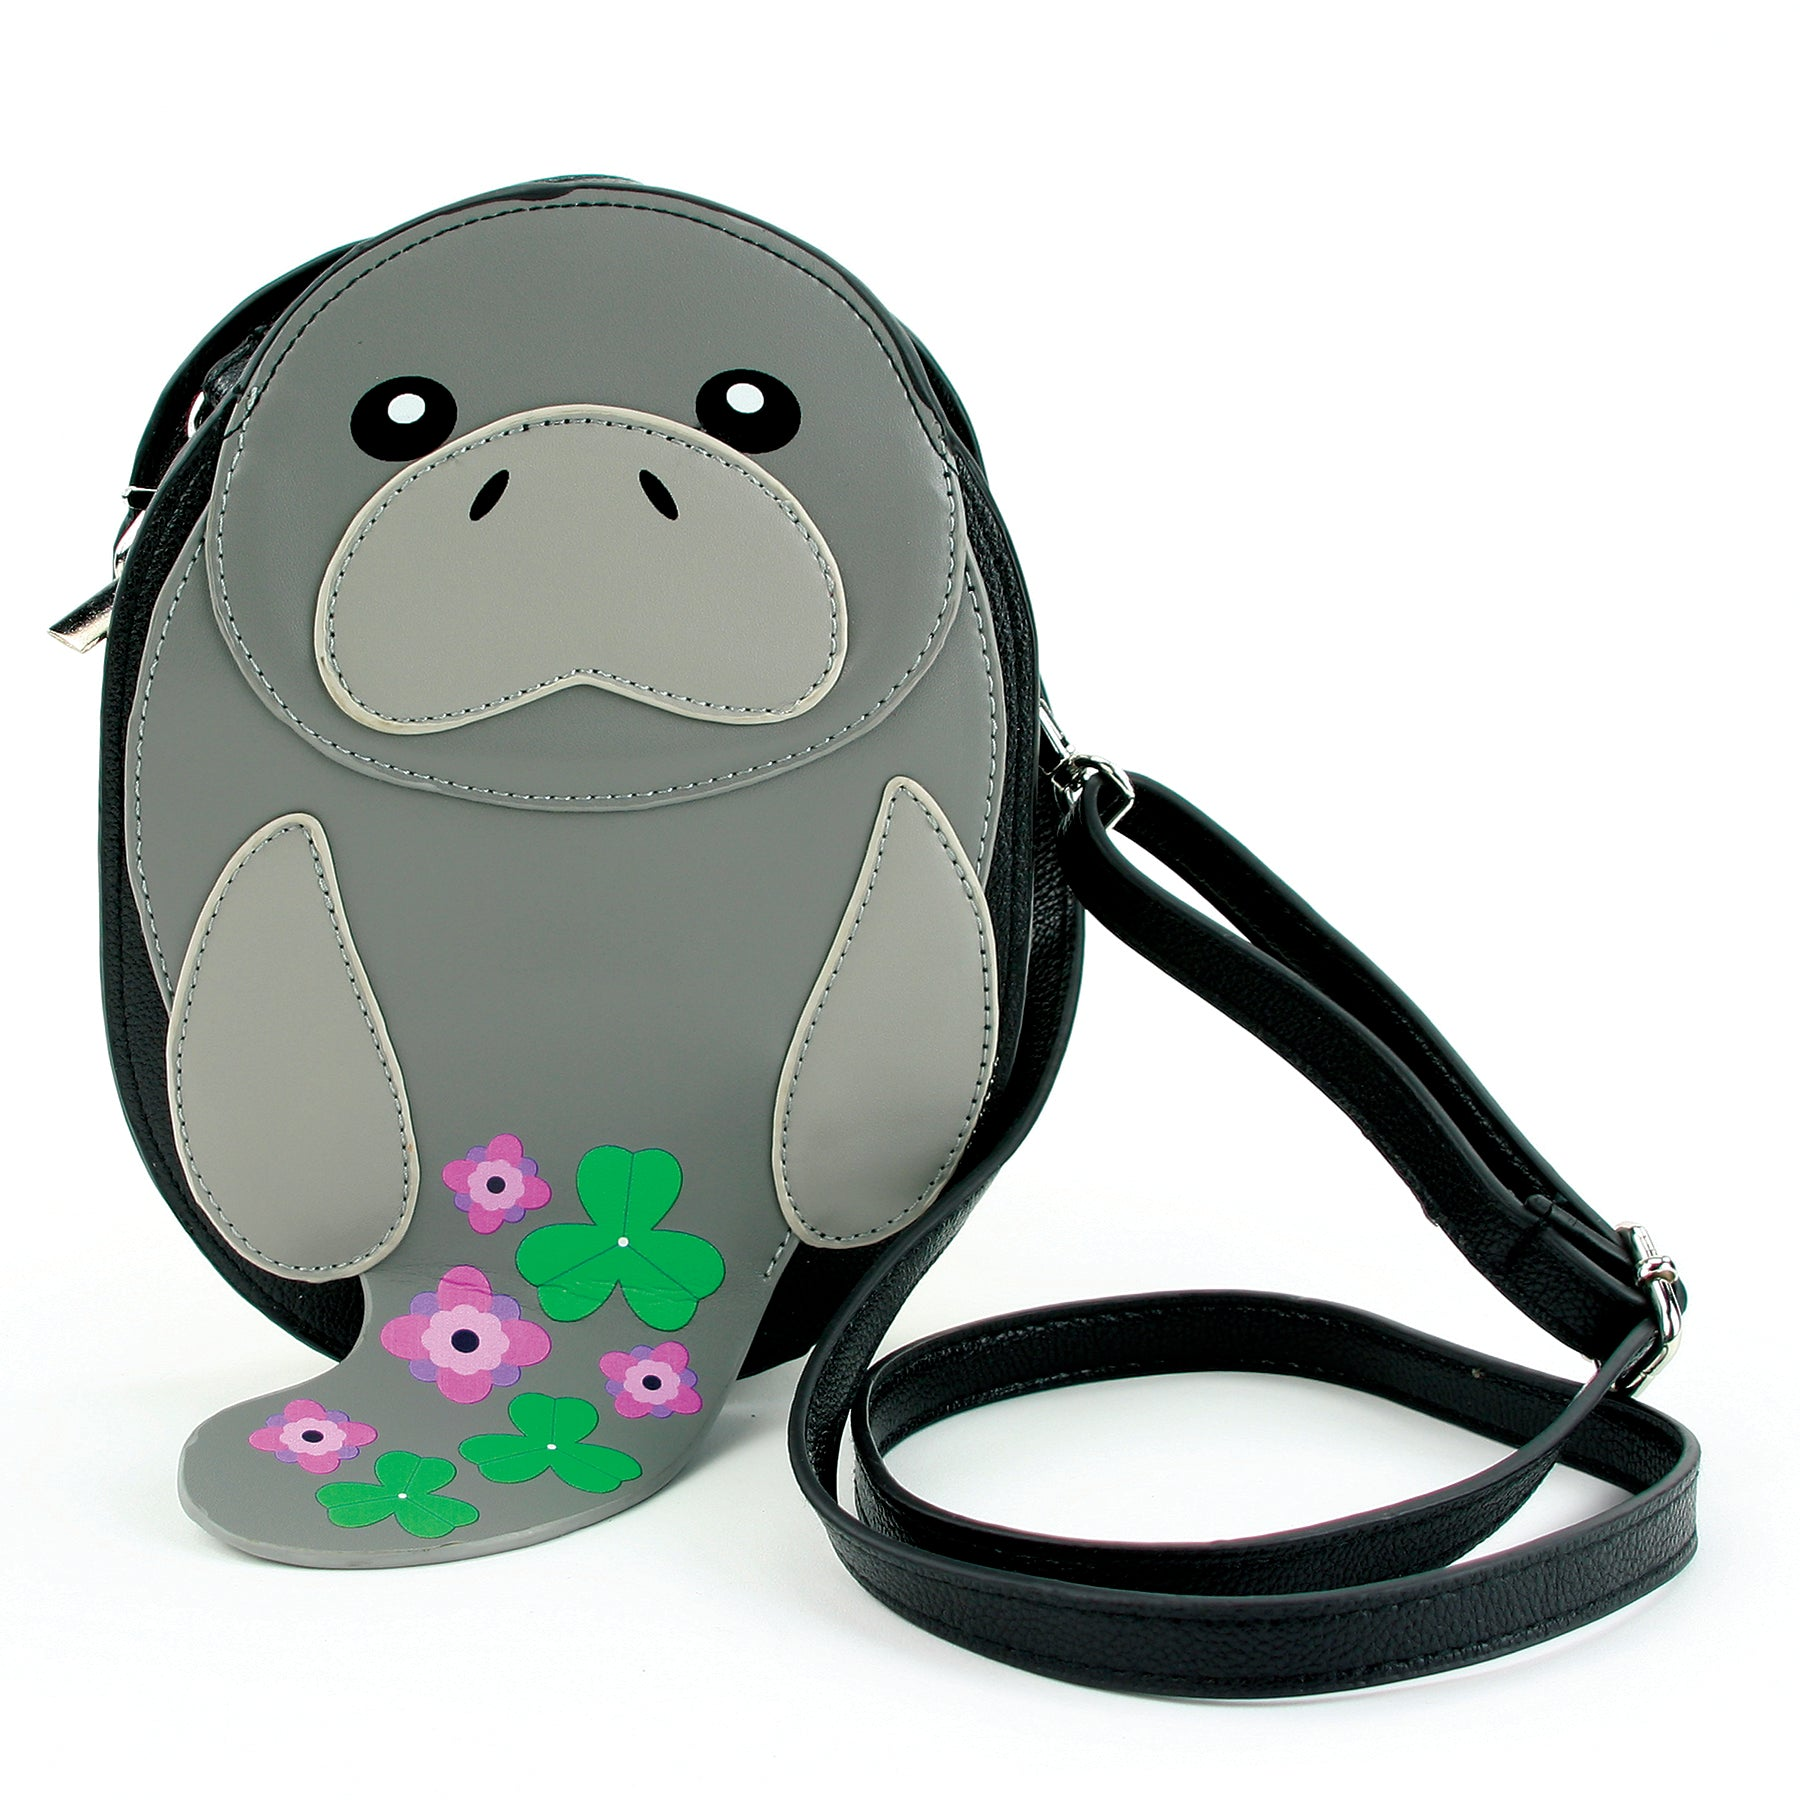 Manatee Cross Body Bag in Vinyl Material front view